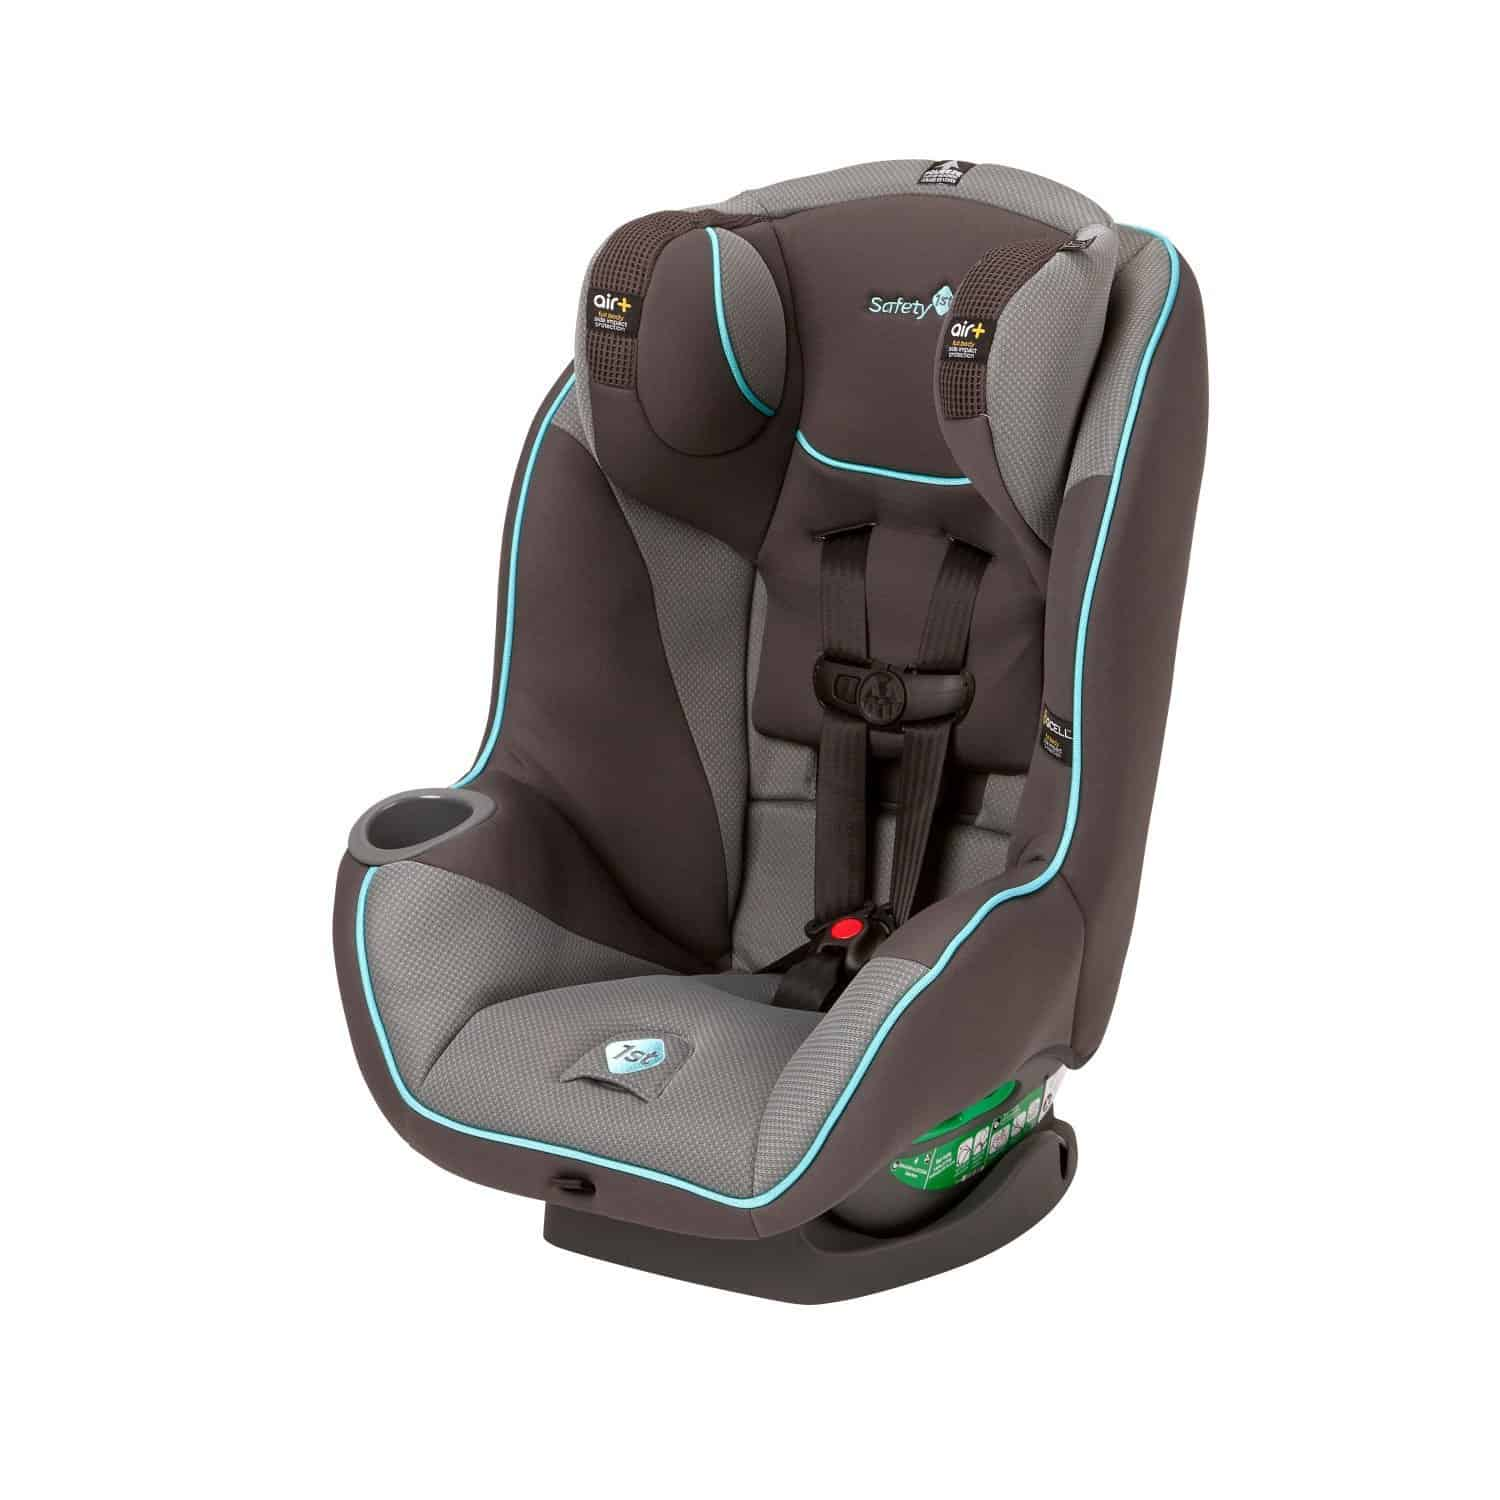 Convertible Car Seat Review Safety 1st Advance Se 65 Air Baby